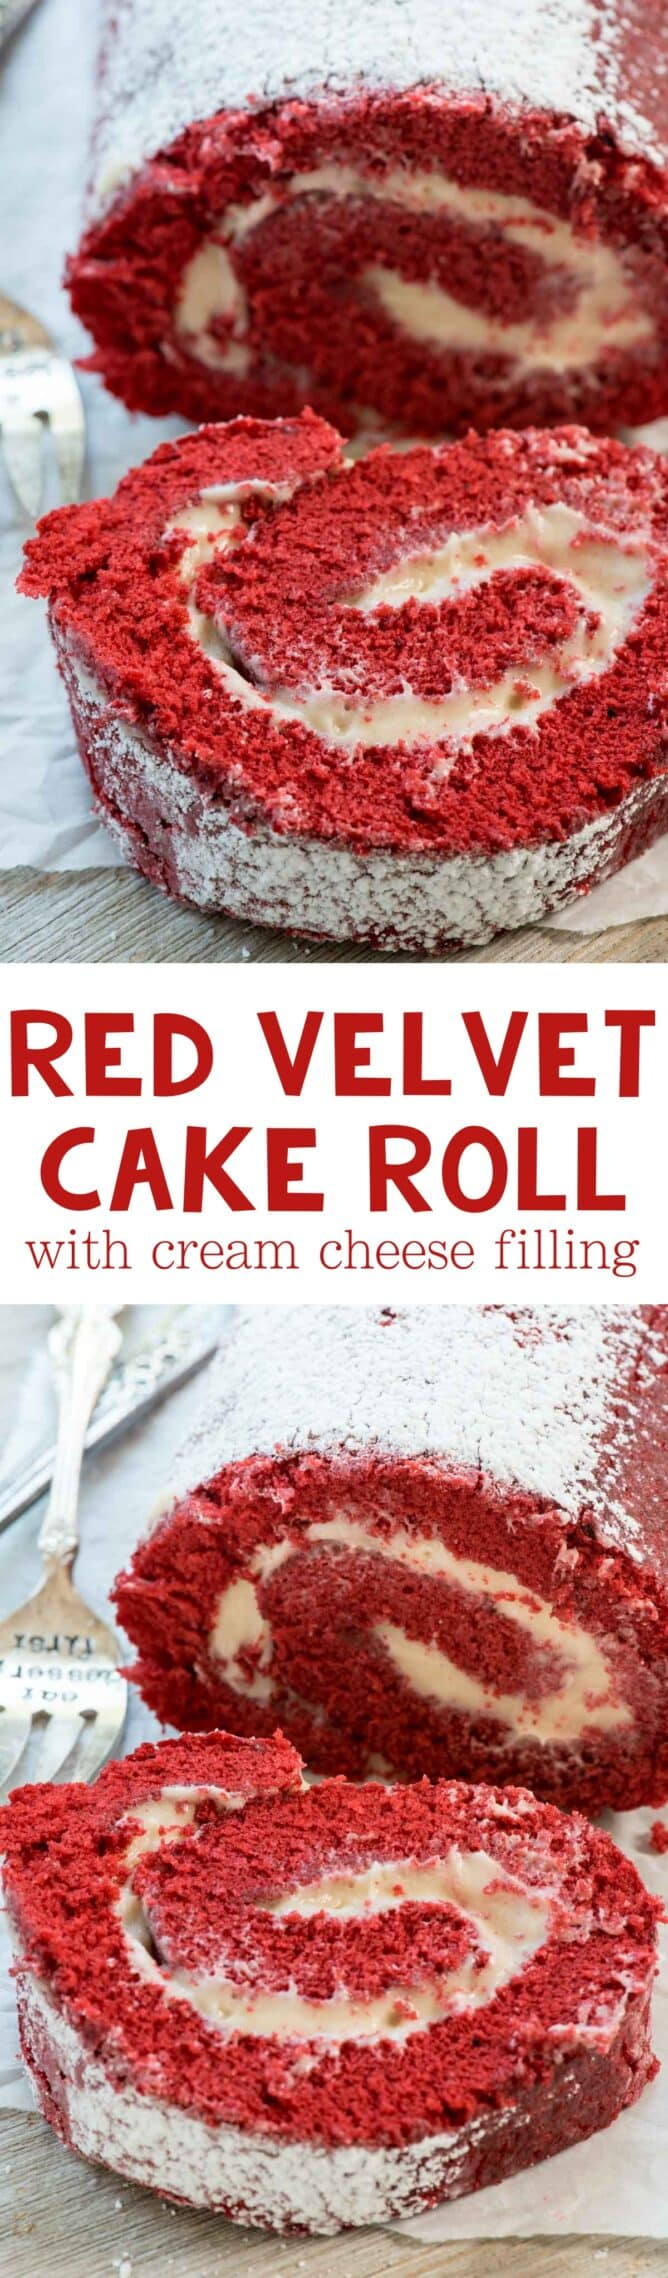 Red Velvet Cake Roll collage photo with slices